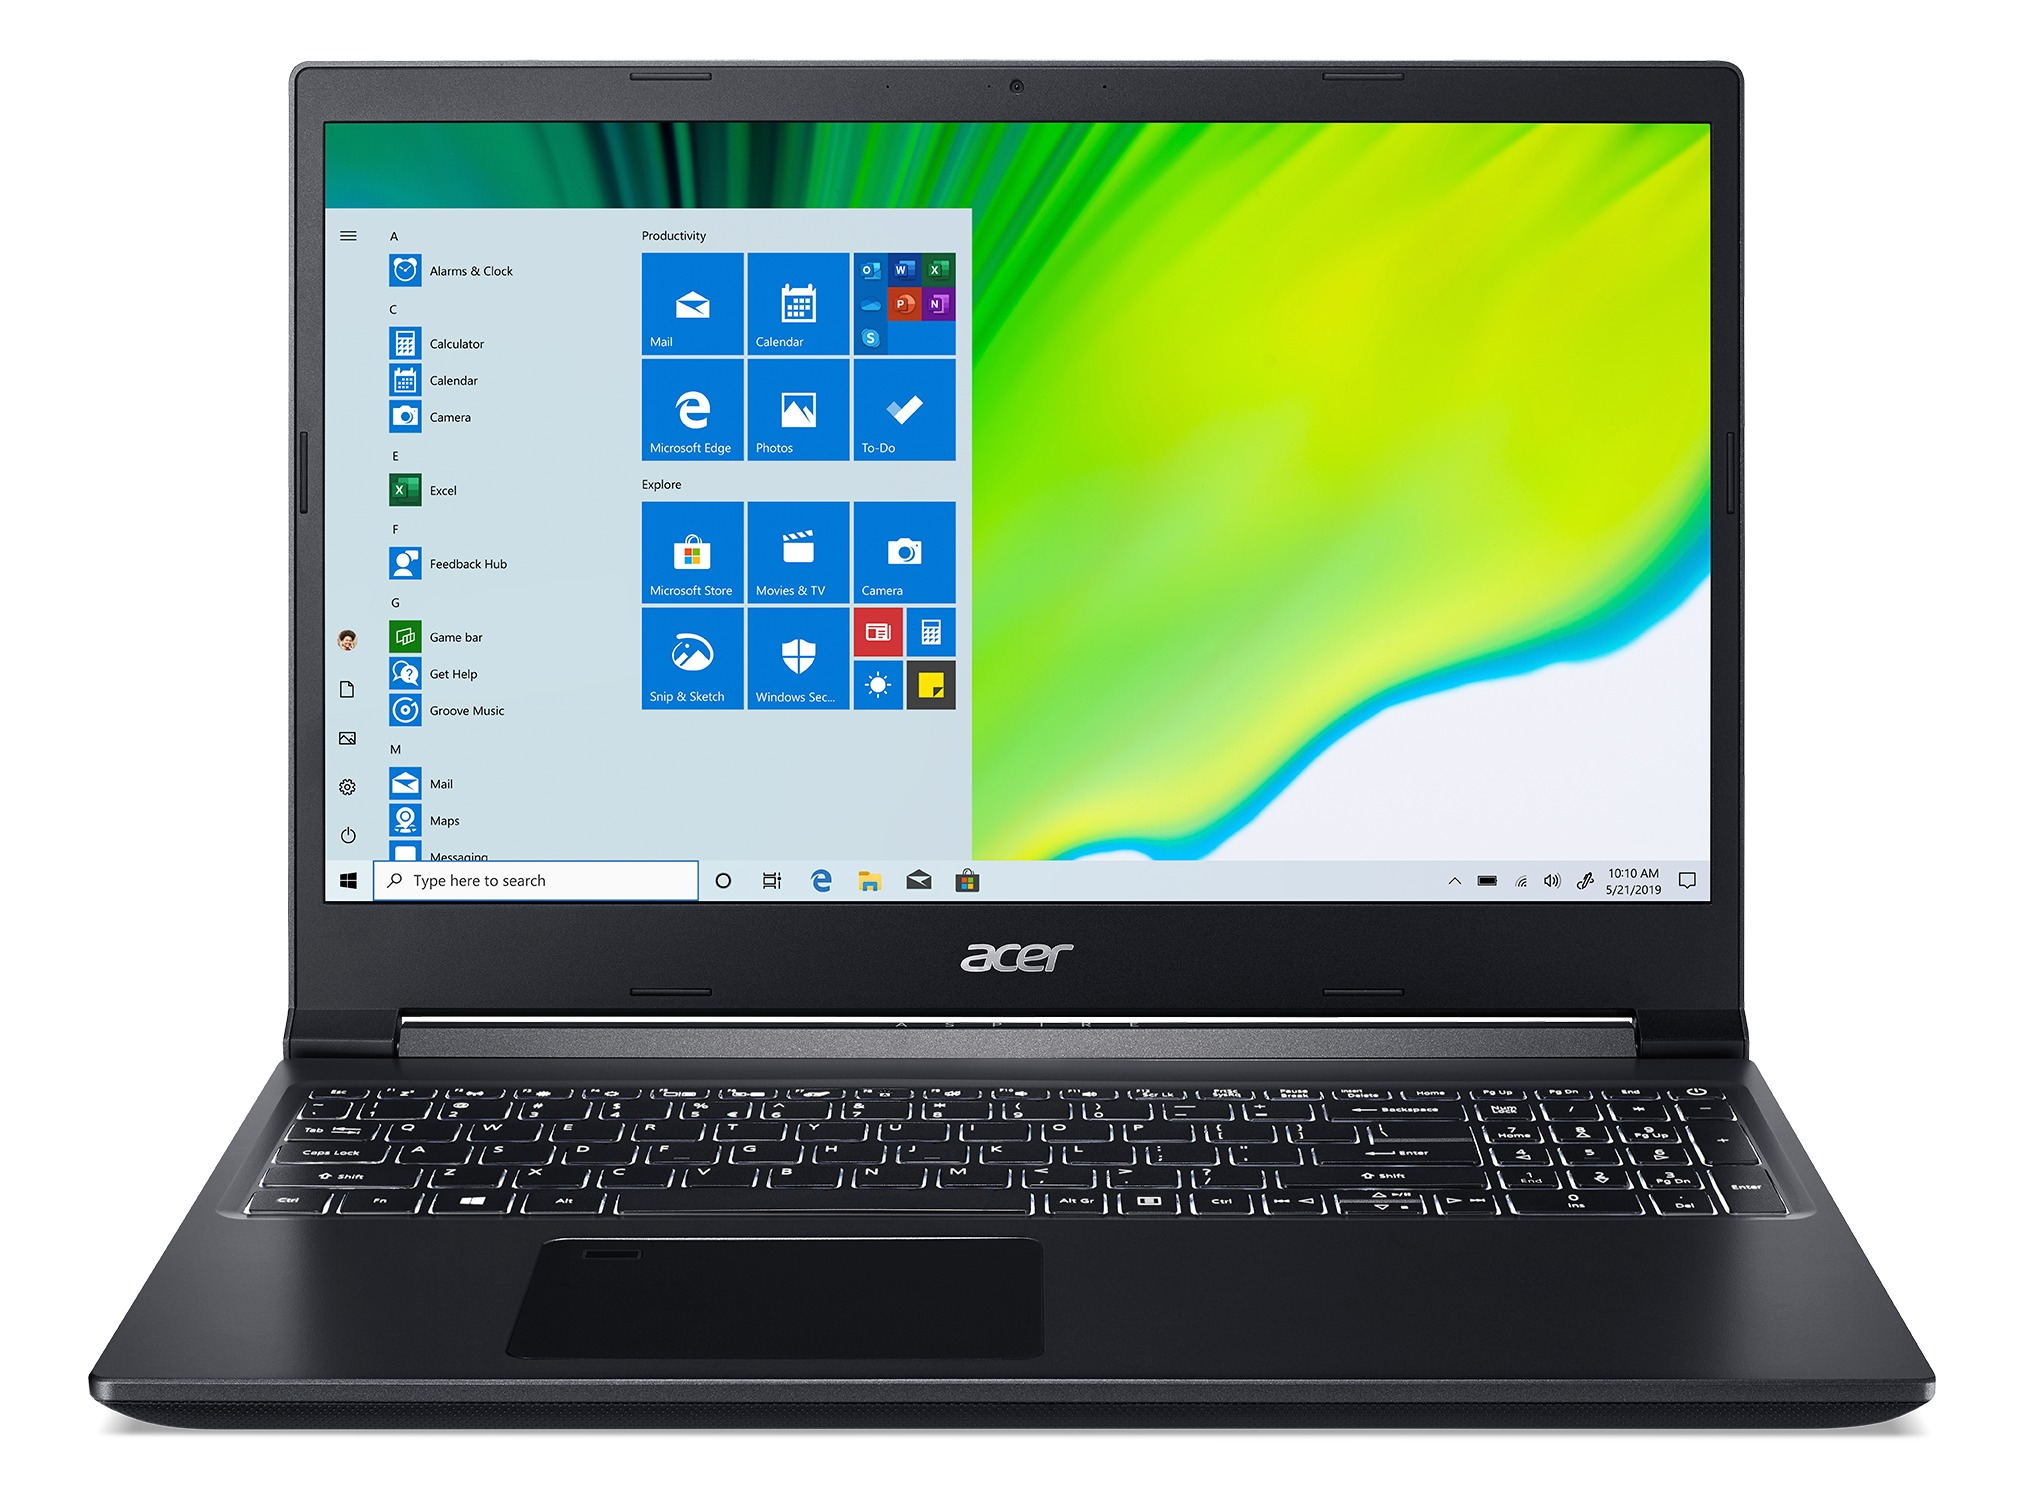 Acer Aspire 7 A715-75G-78MA -15 inch Laptop